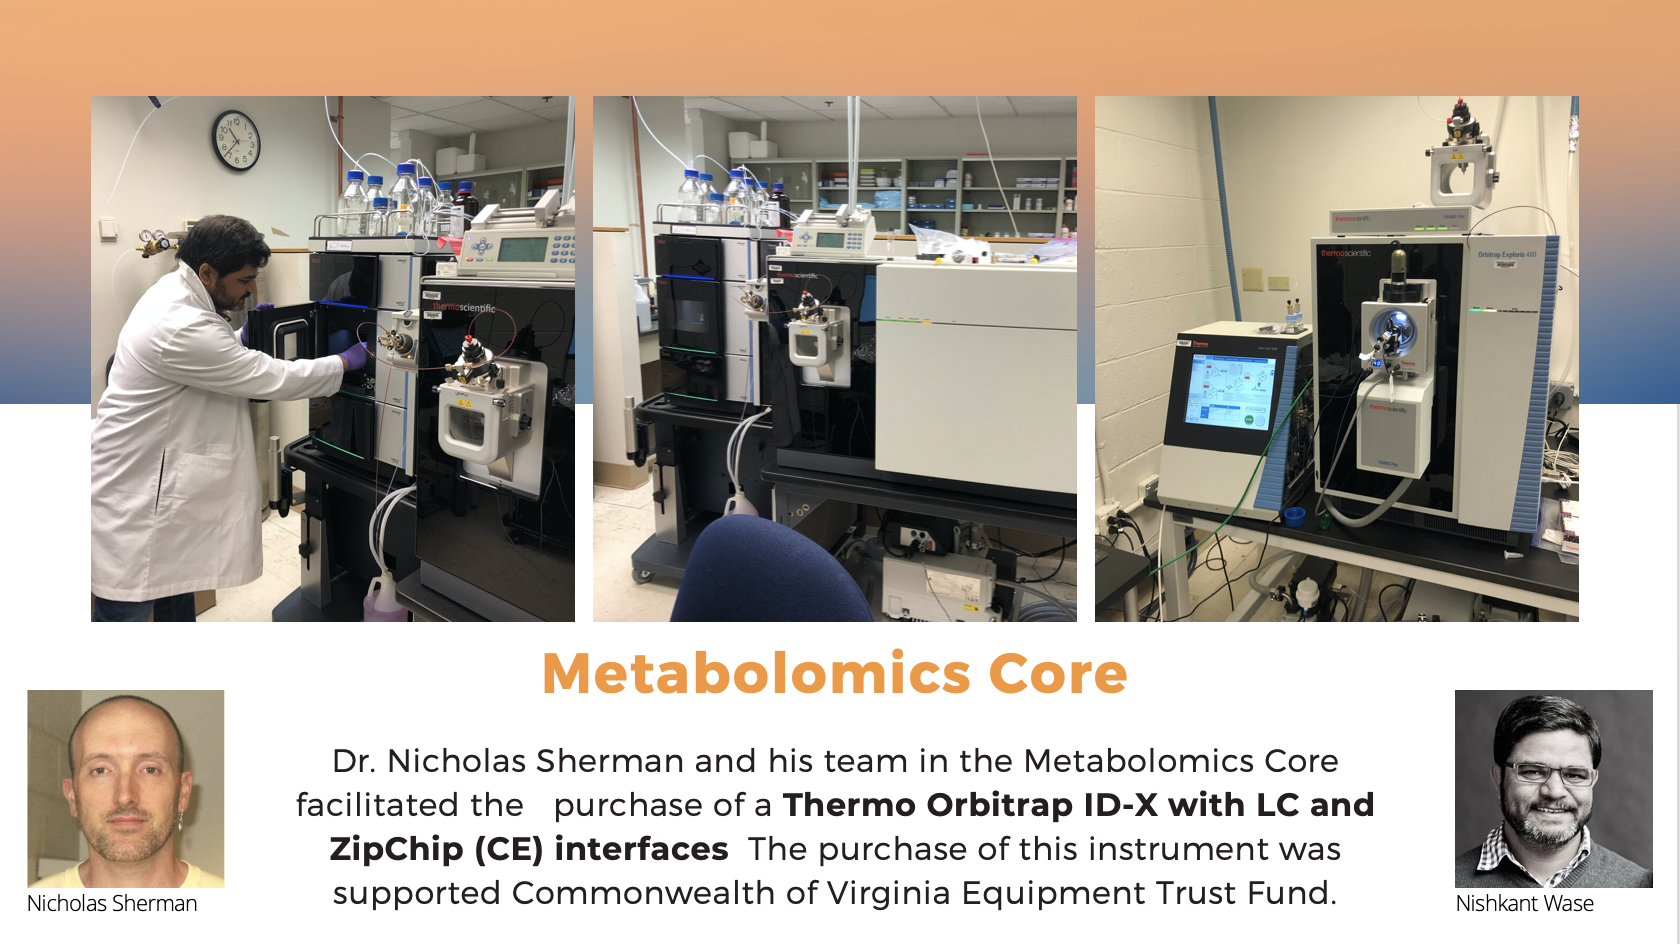 Metabolomics Core Information